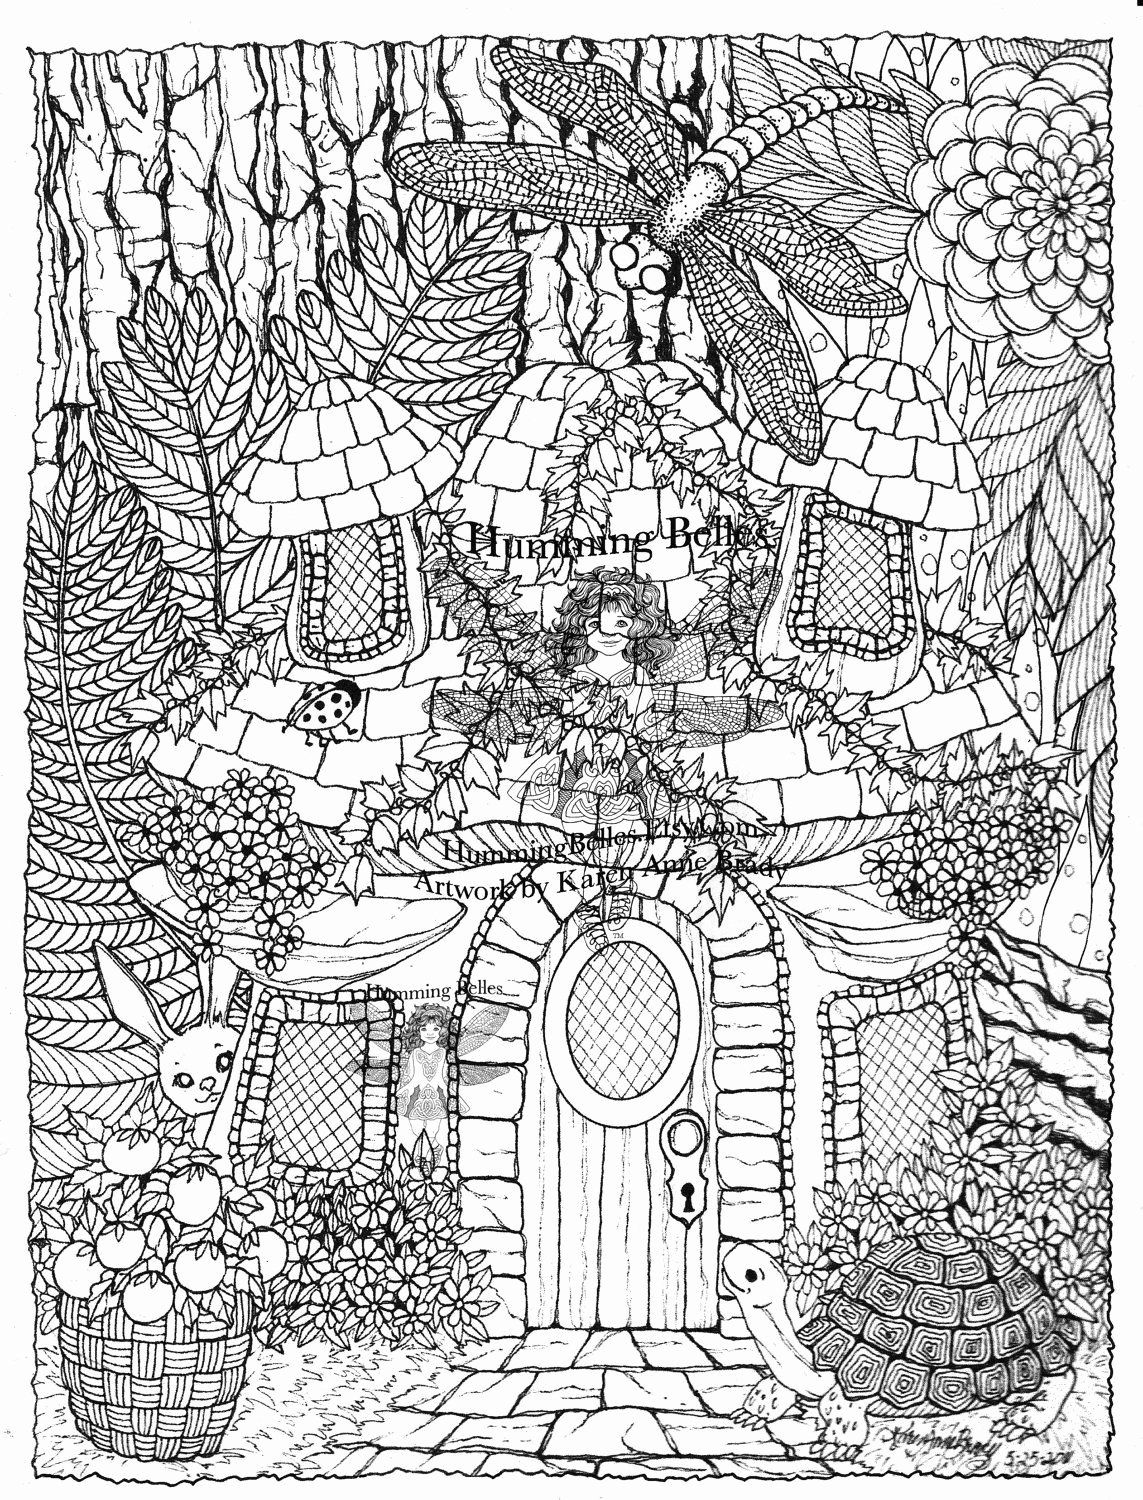 Vegetable Garden Coloring Pages Printable Beautiful Printable Fairy Garden Coloring Pages In 2020 Detailed Coloring Pages Turtle Coloring Pages Mandala Coloring Pages